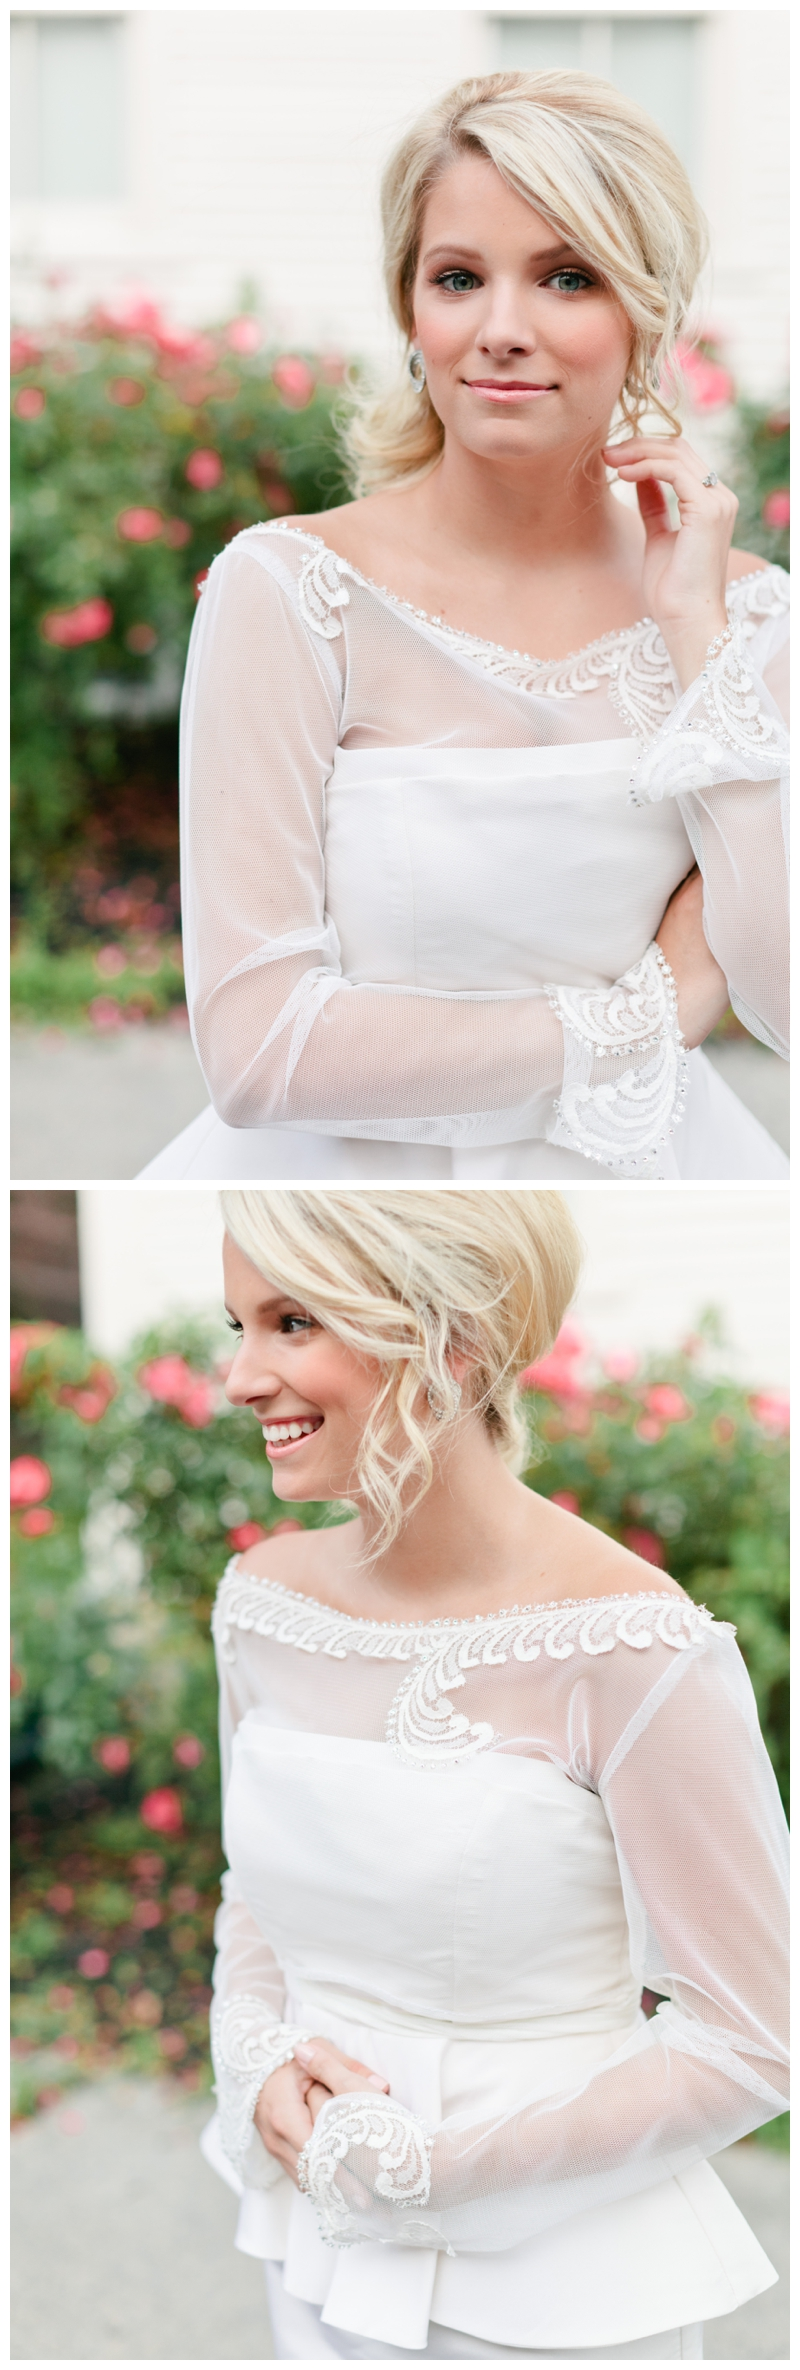 bridal hair, bridal updo, short hair updo, short hair, wedding hair, wedding updo